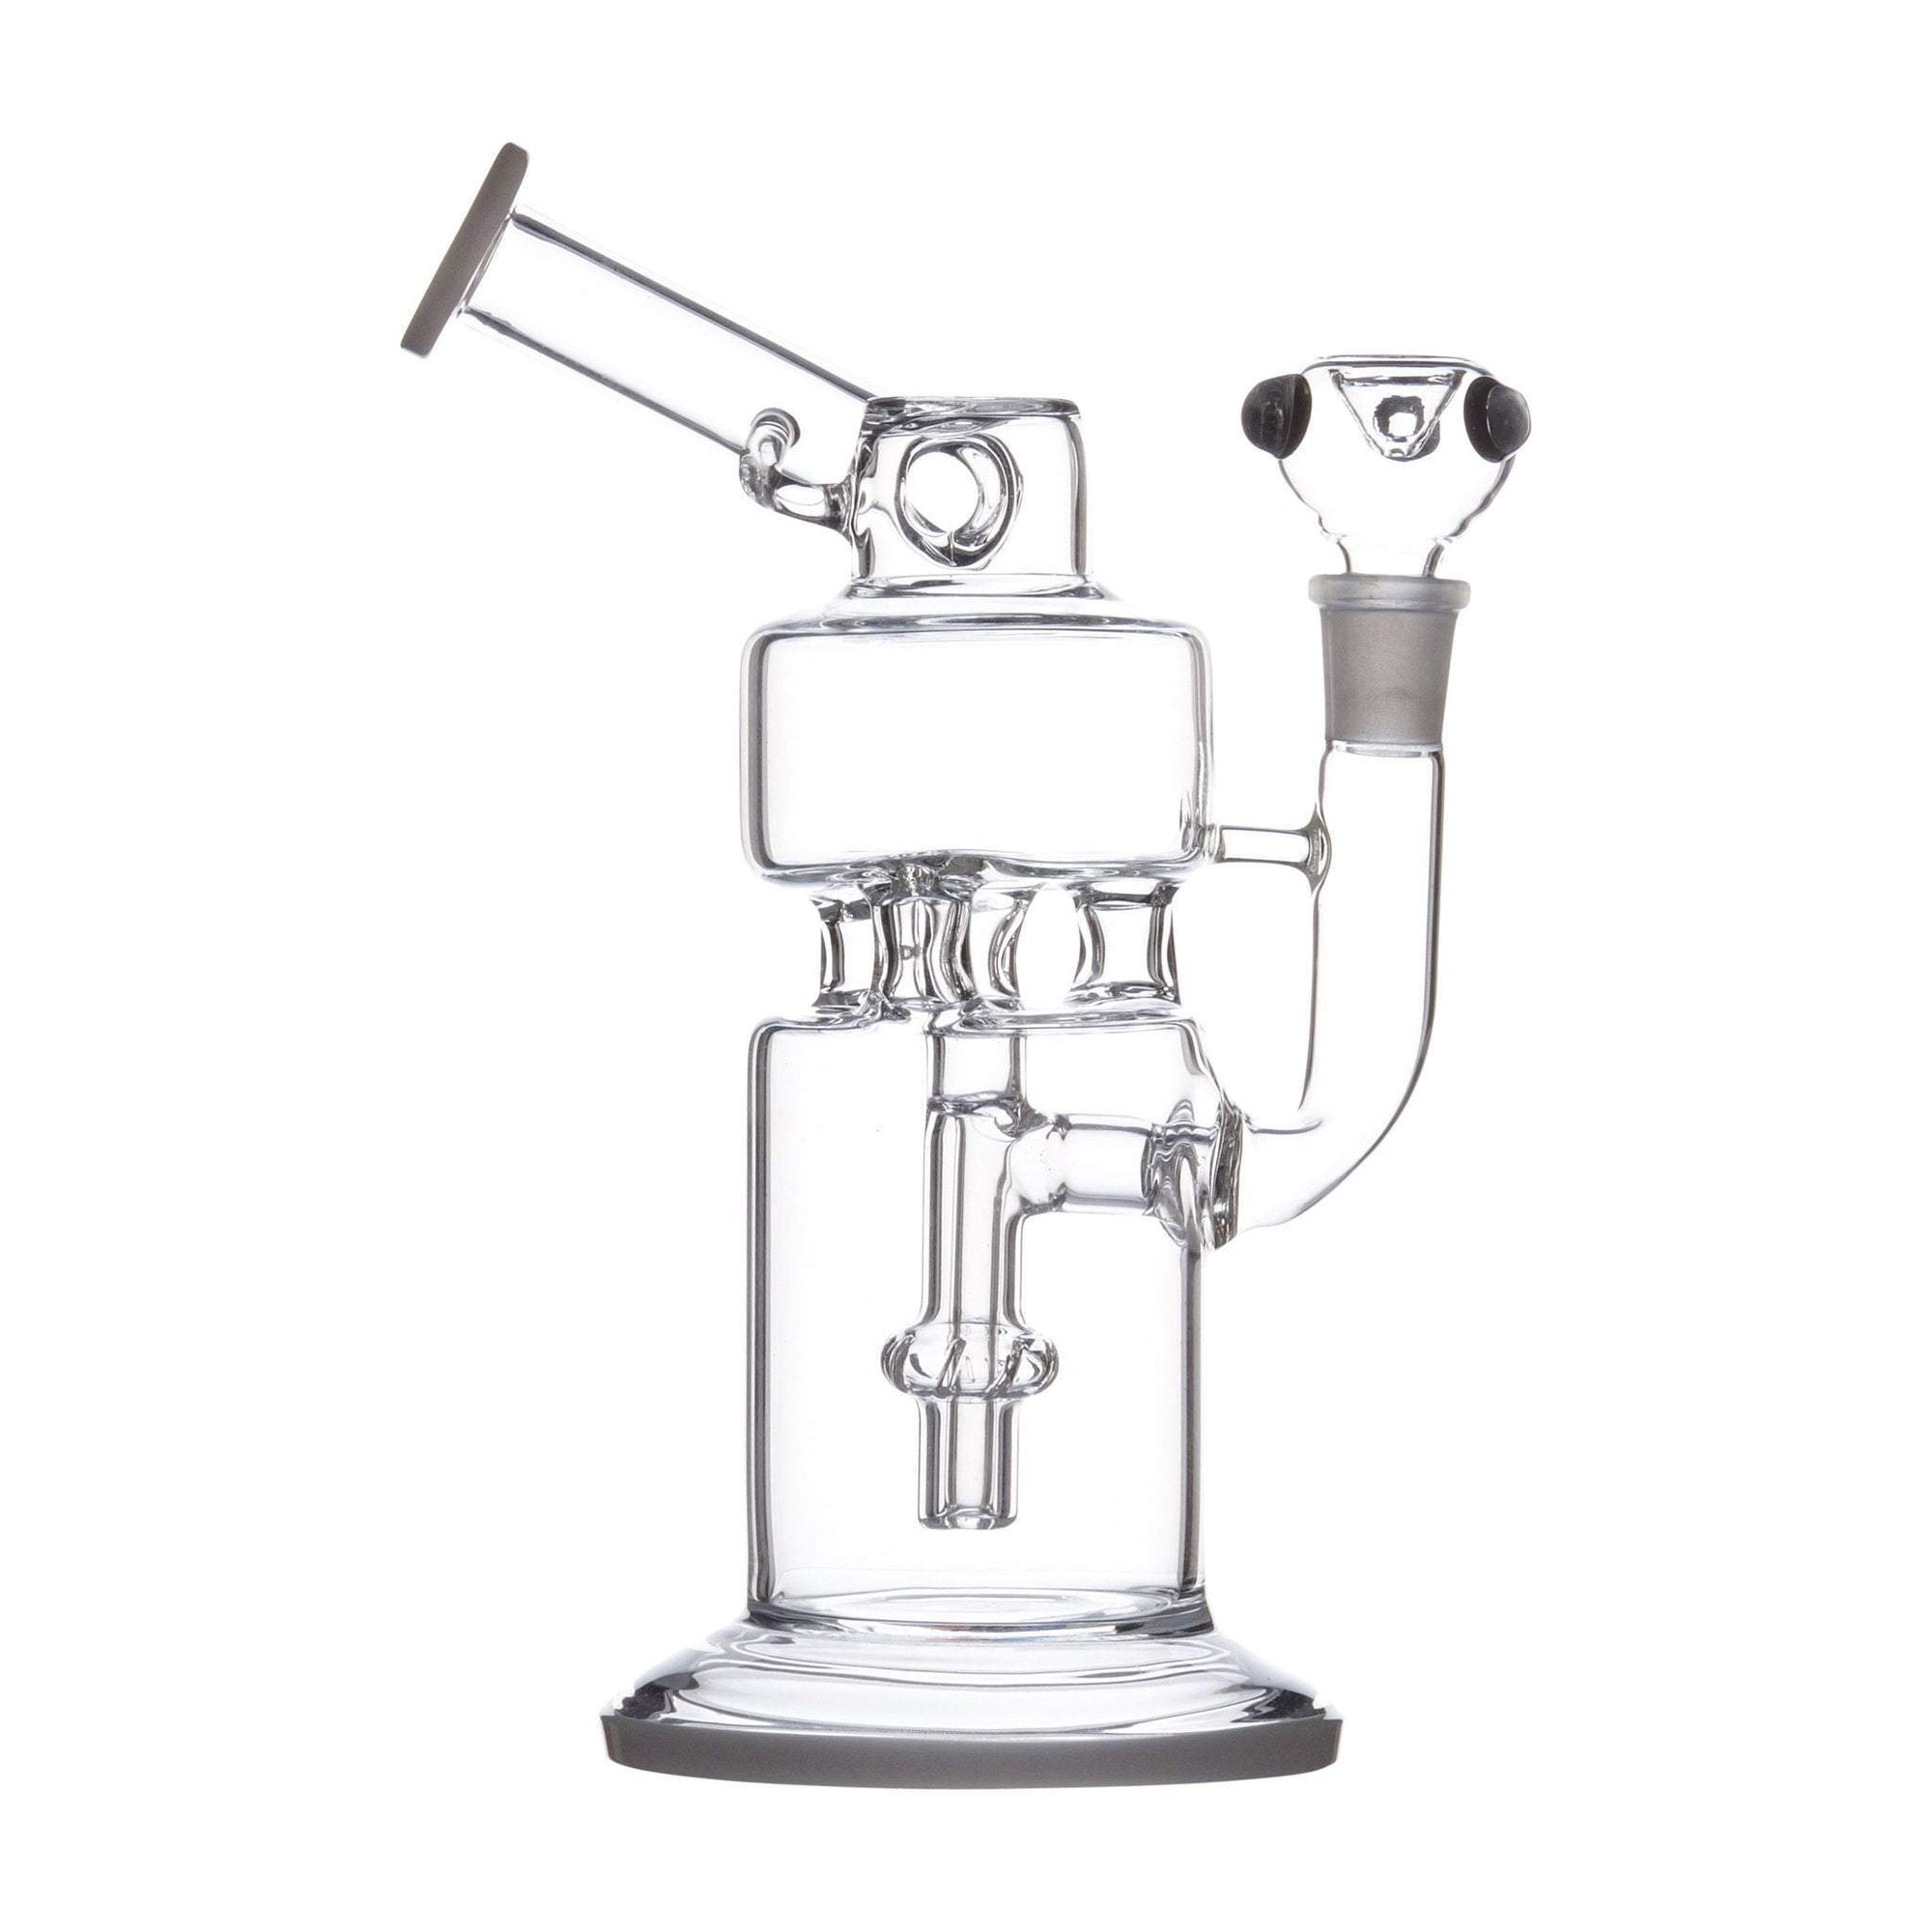 9-inch cylinder clear glass bong smoking device wide chambers sturdy base microscope look